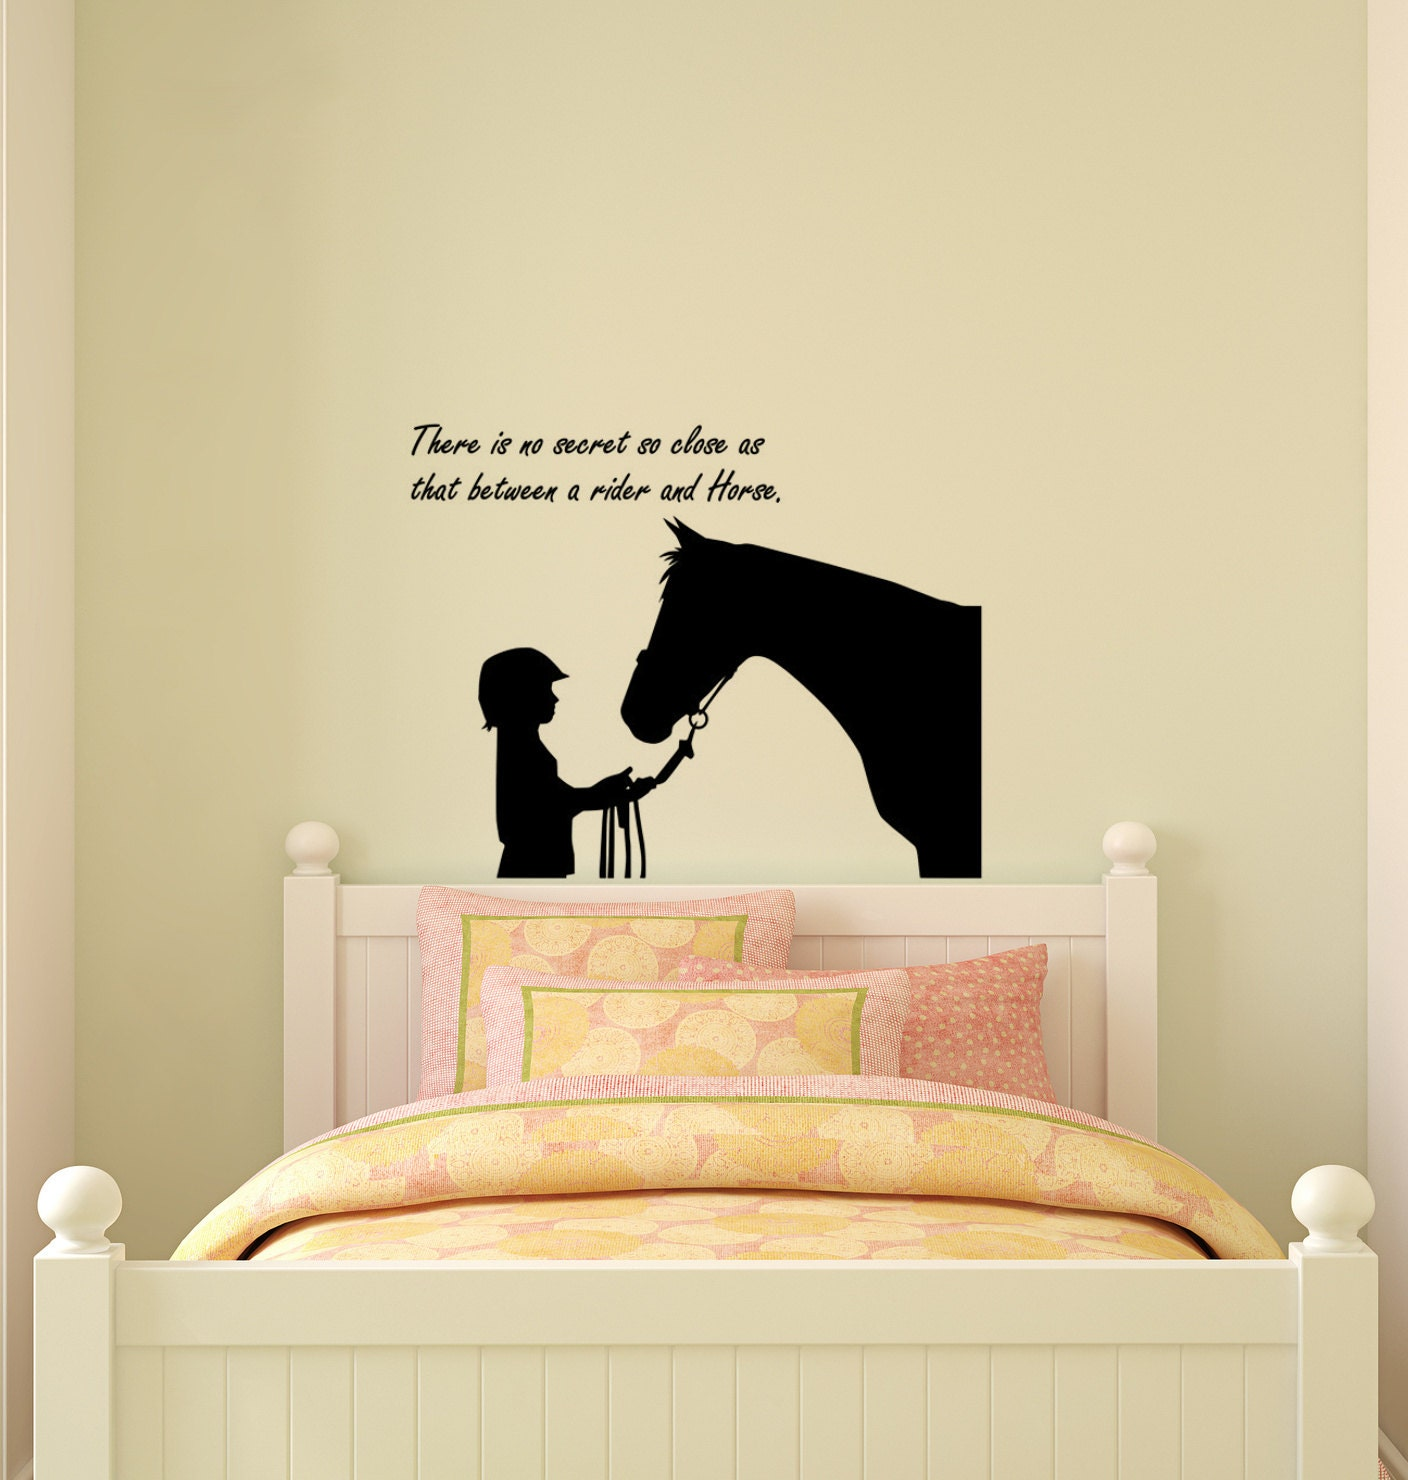 Wall Decals Quotes: Horse Decal-Horse Sticker-Quote Decal-Horse Wall Decor-Quote